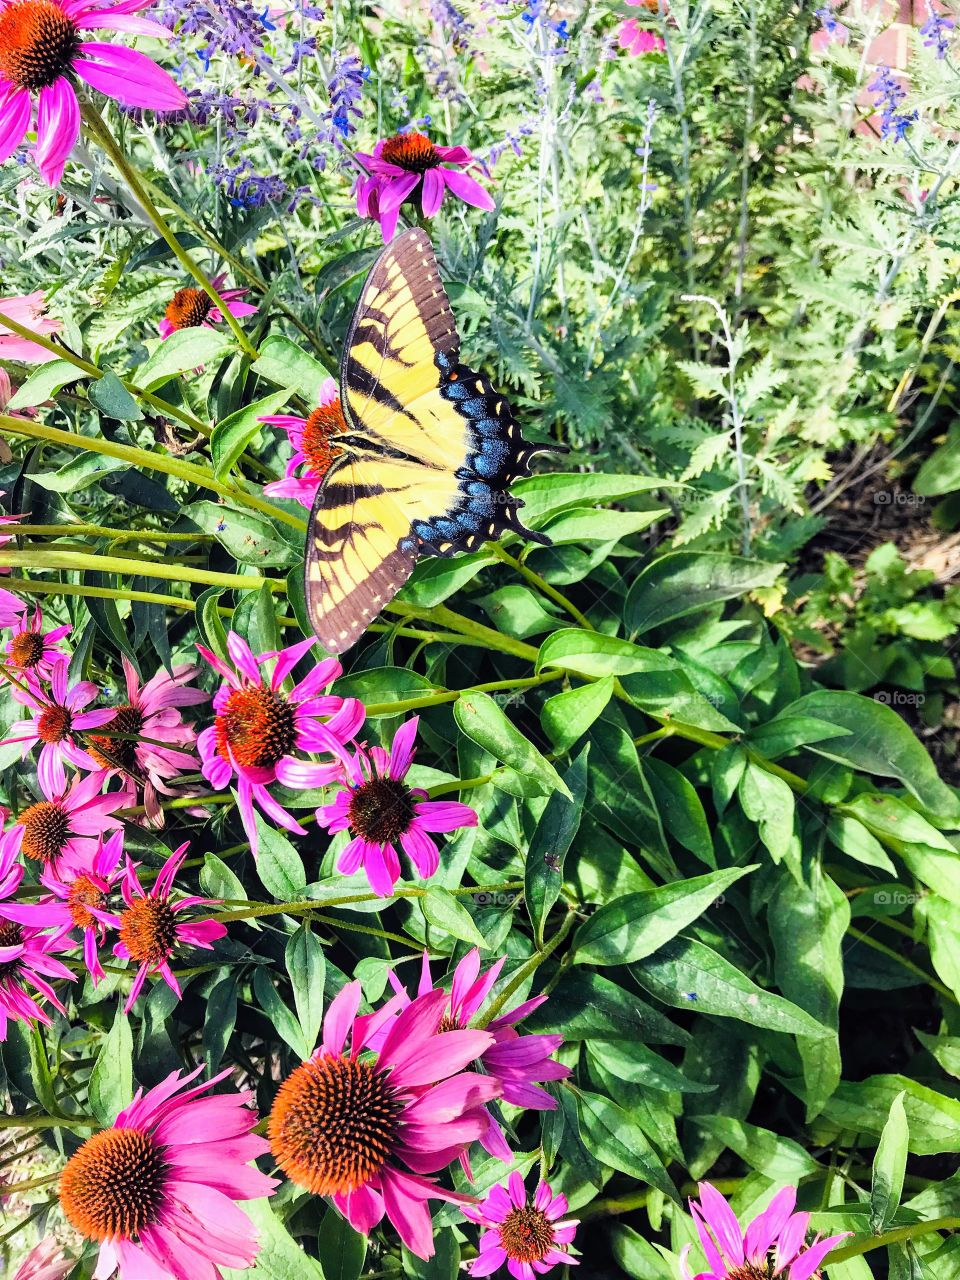 Gorgeous bright butterfly sitting perched a top beautiful flowers in lush garden!!